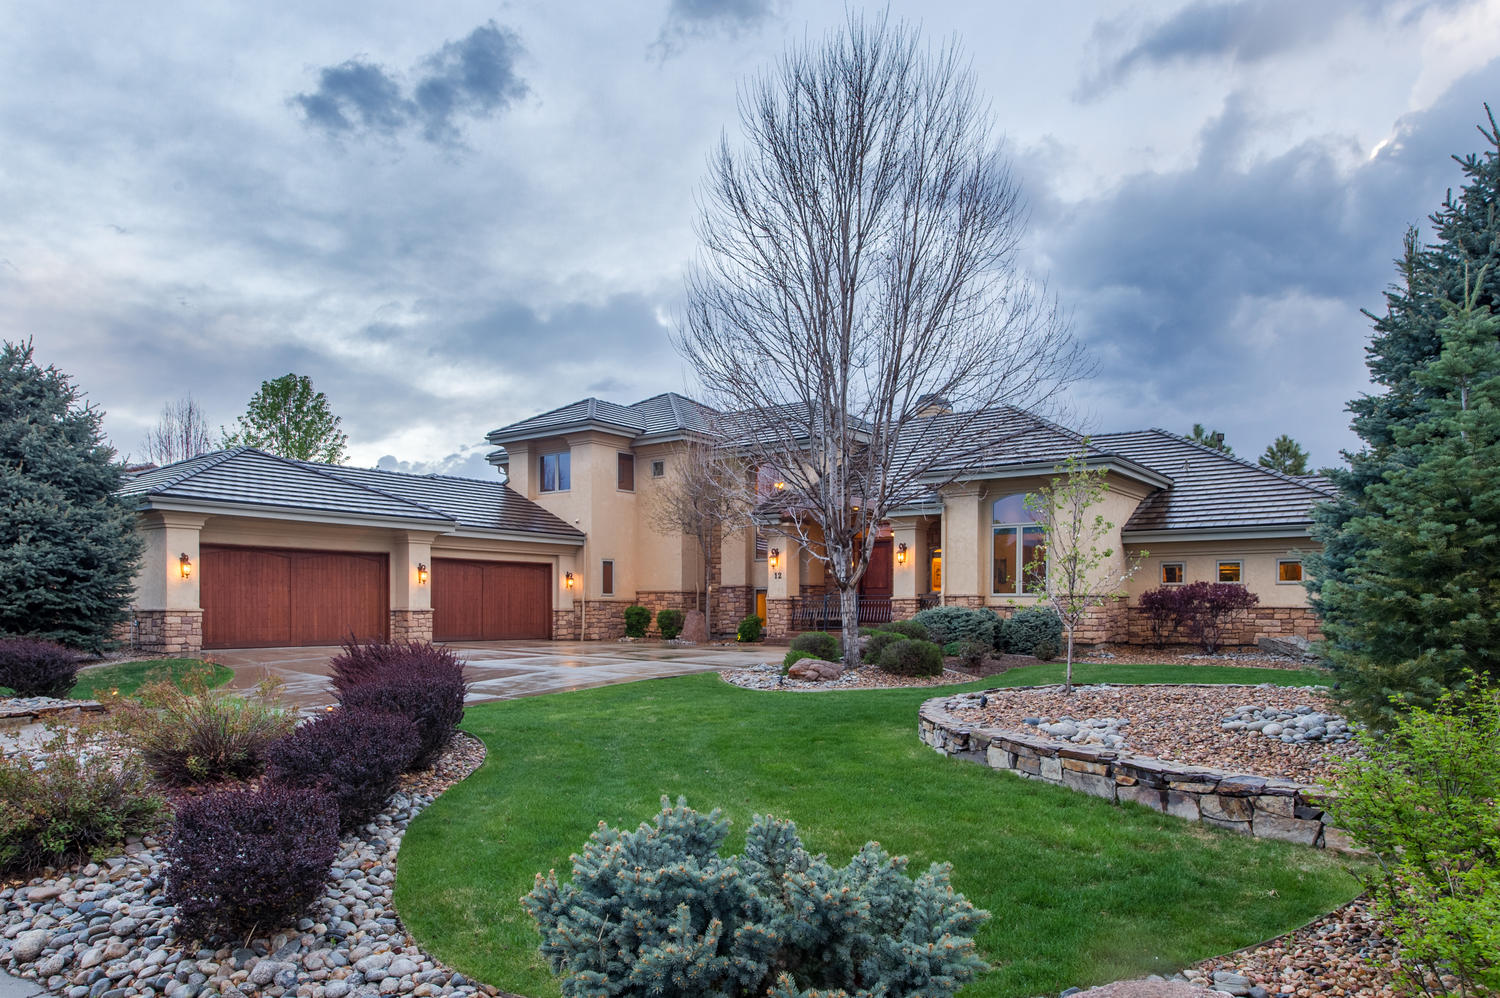 Single Family Home for Sale at Exquisite custom Austin Signature home 12 Brookhaven Trl Littleton, Colorado, 80123 United States